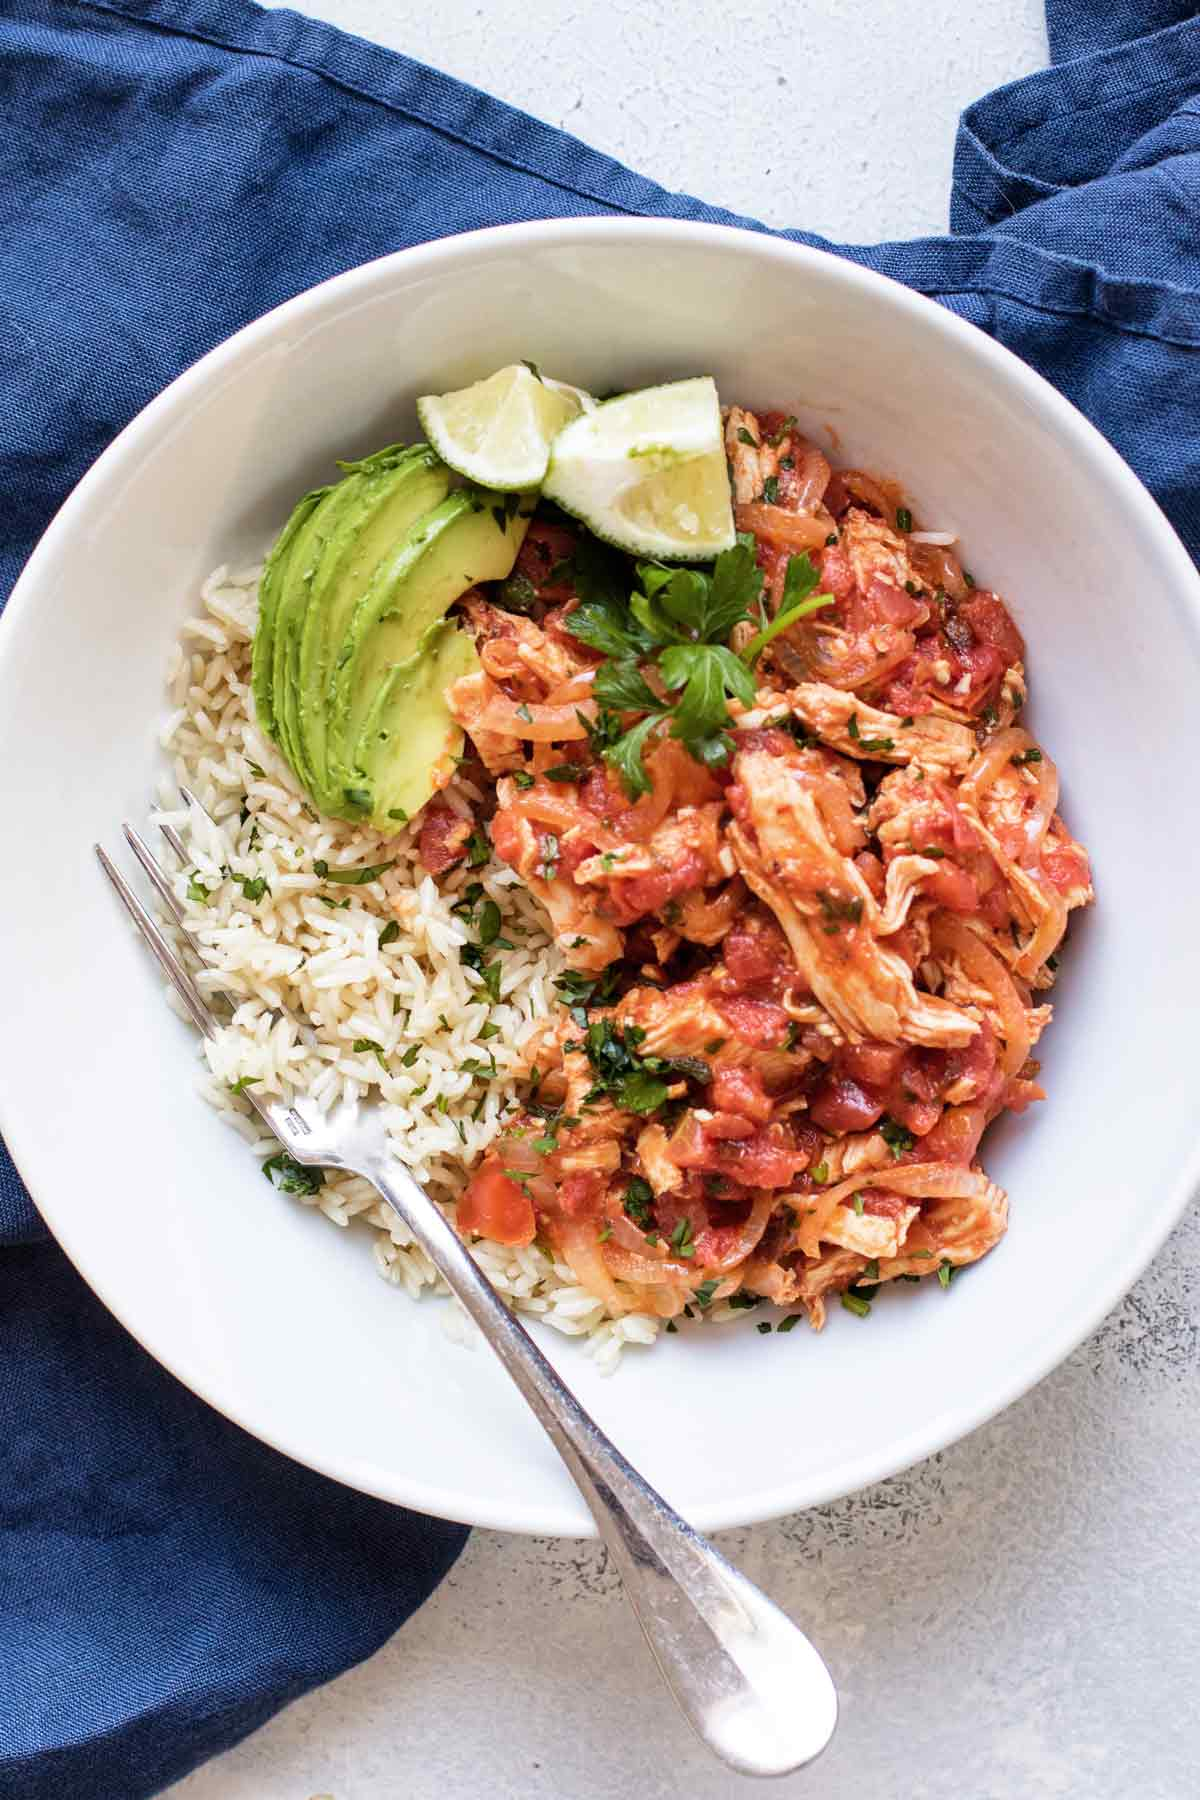 chicken tinga in a bowl with rice